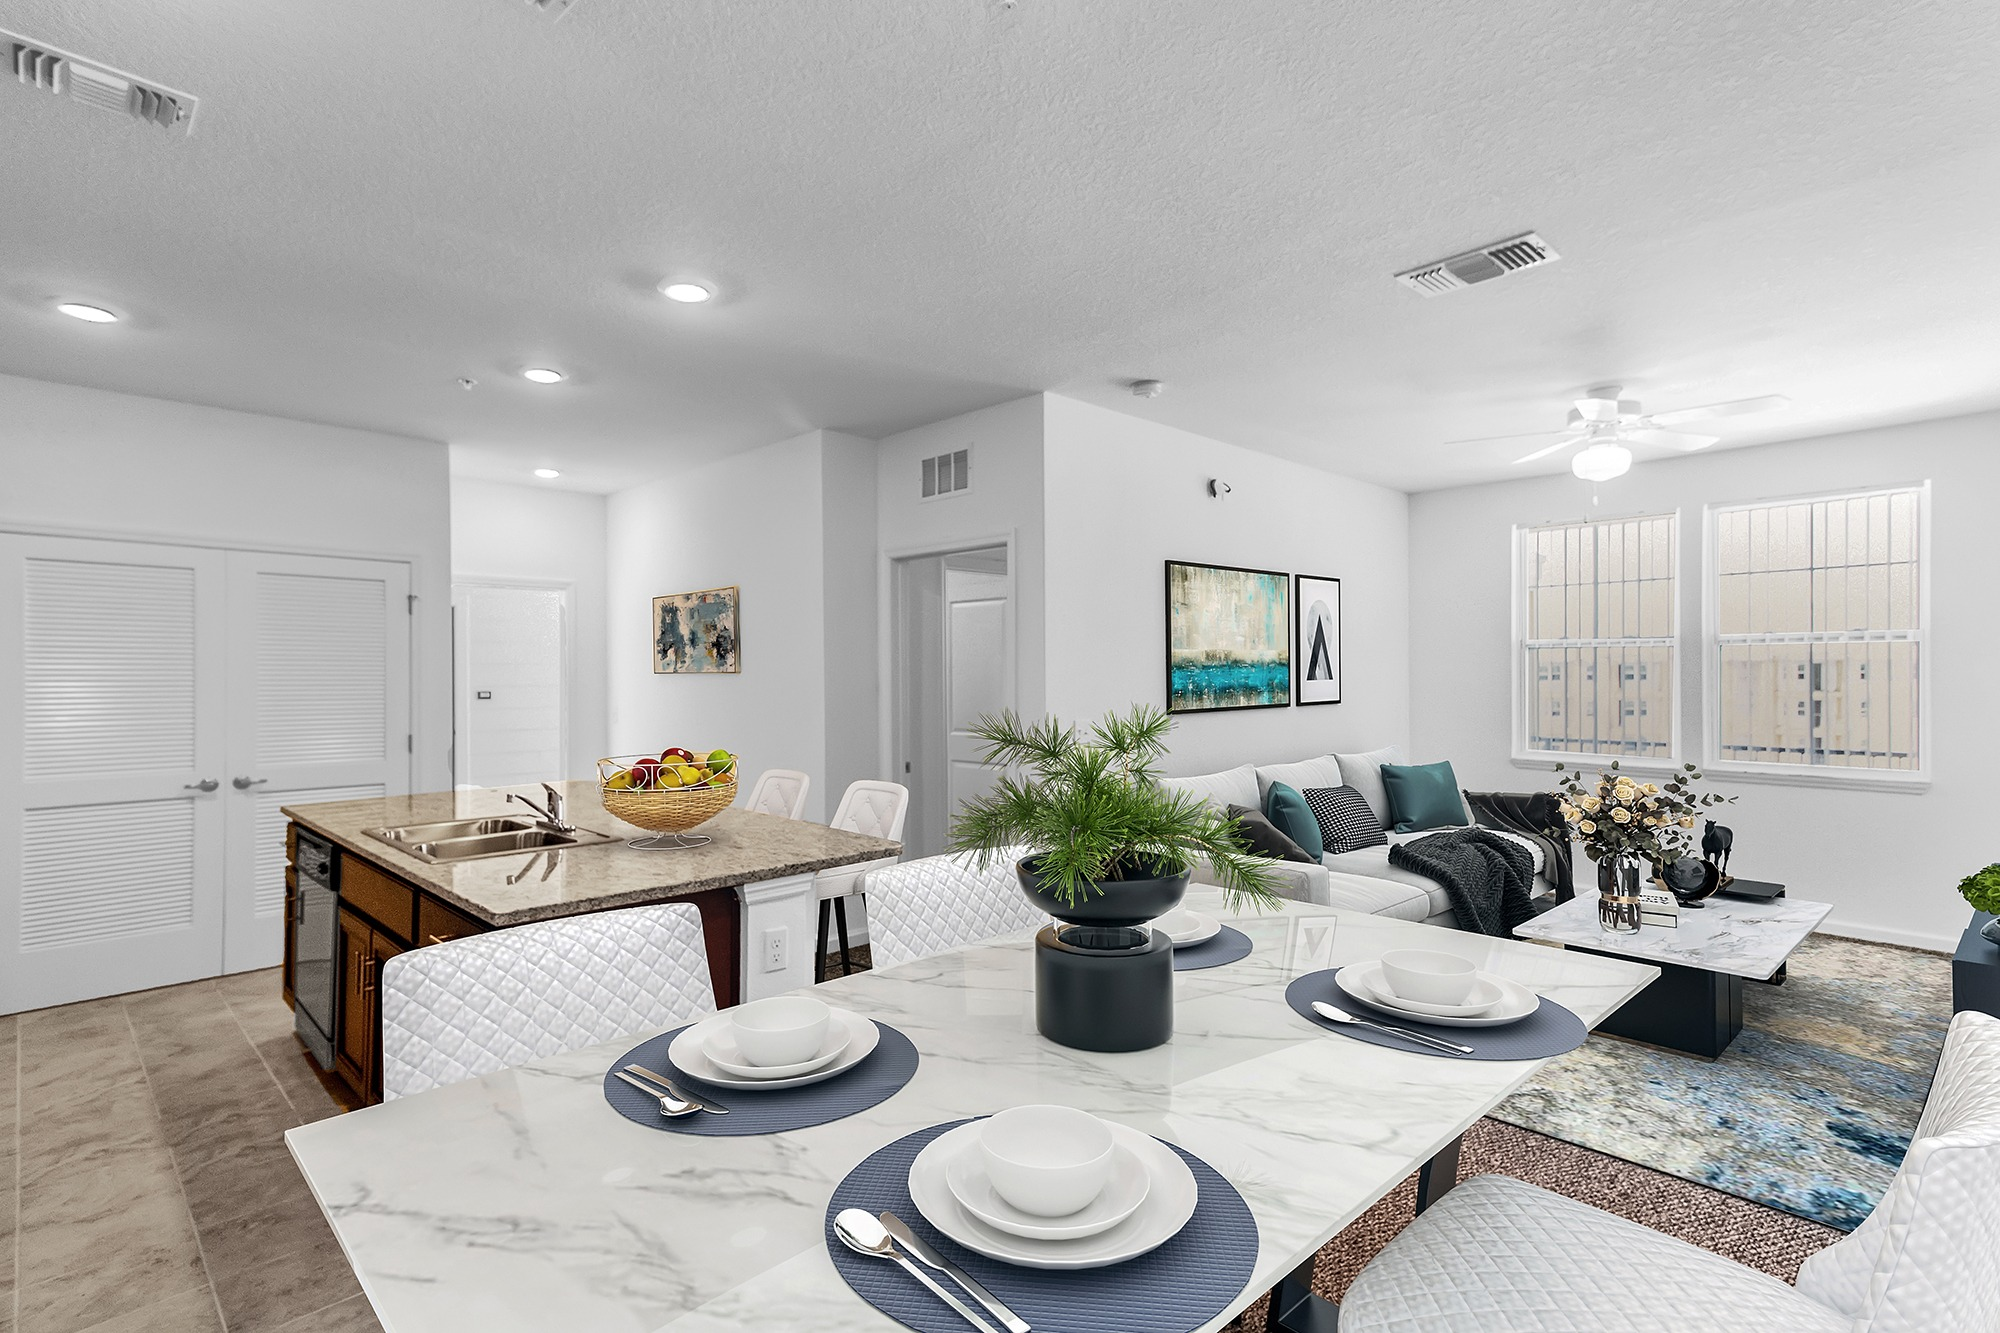 Dining room, kitchen, and living room